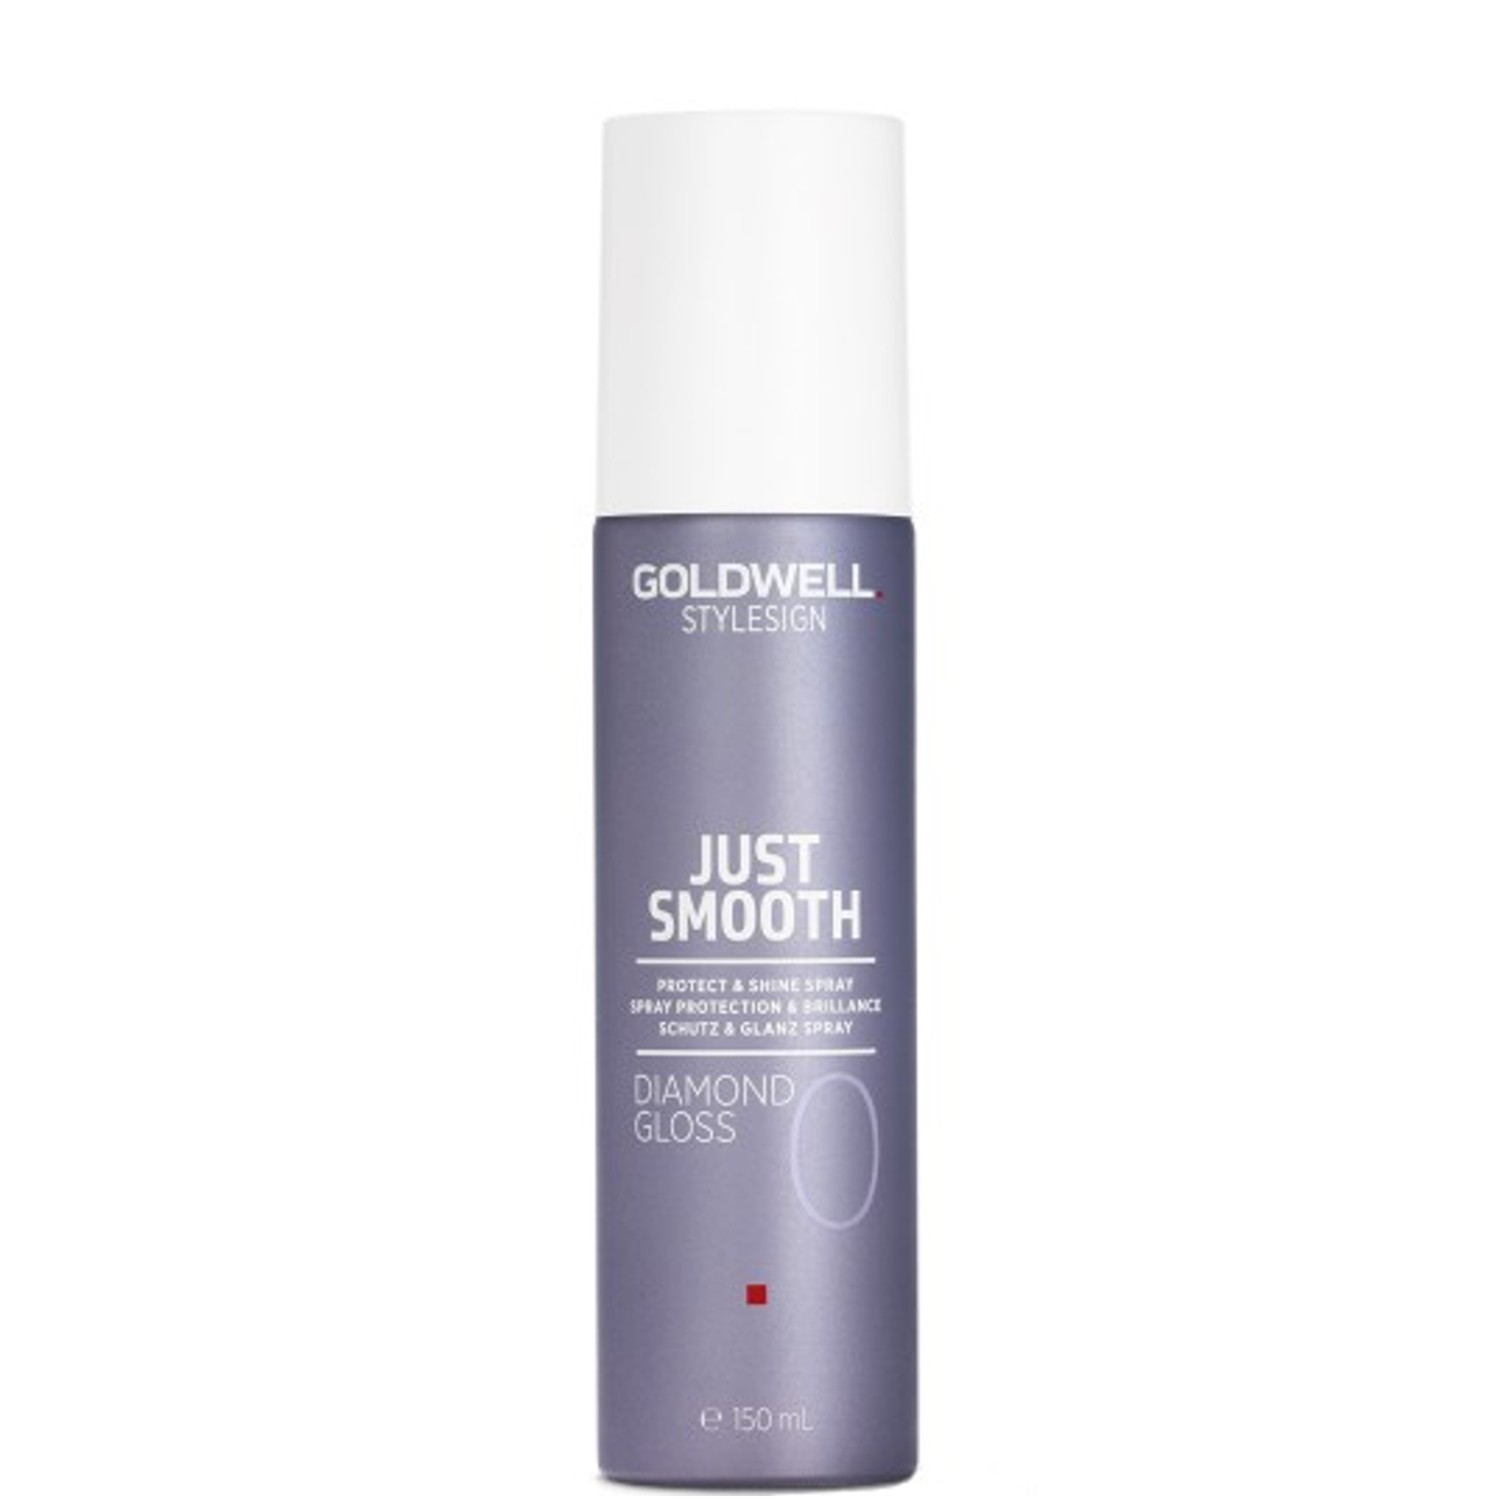 GOLDWELL Style Sign Just Smooth DIAMOND GLOSS 150 ml